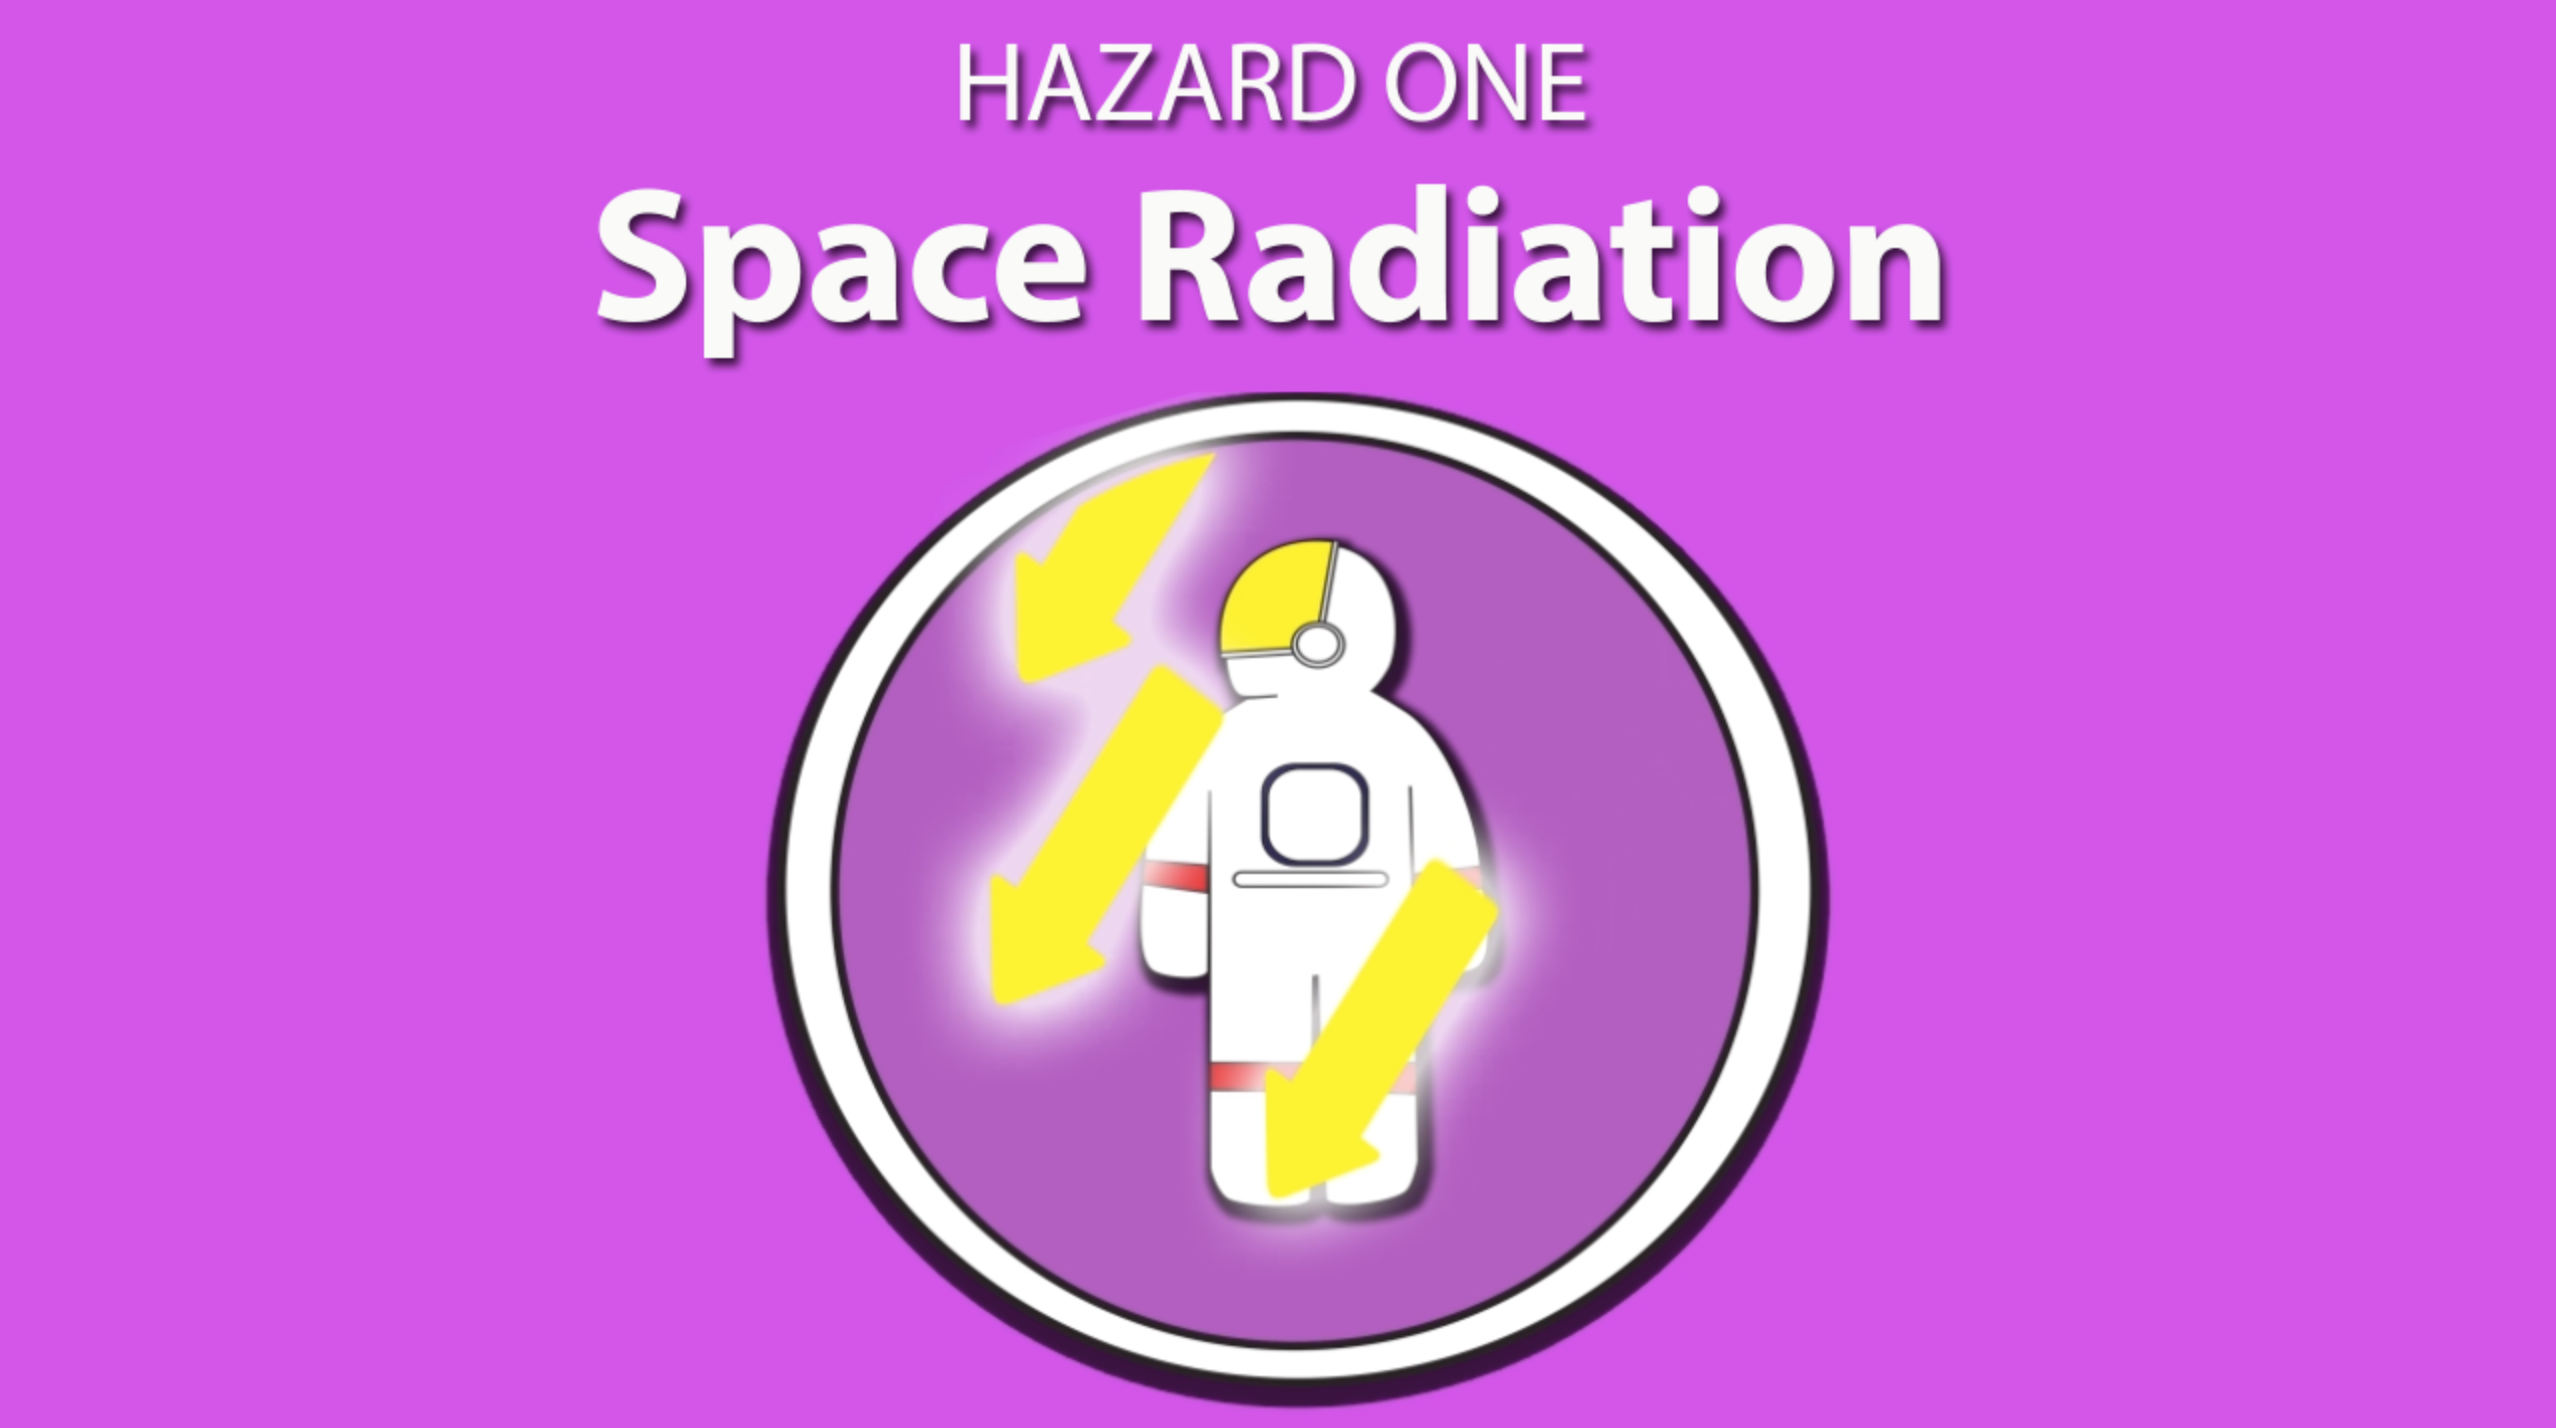 5 Hazards of Human Spaceflight | NASA